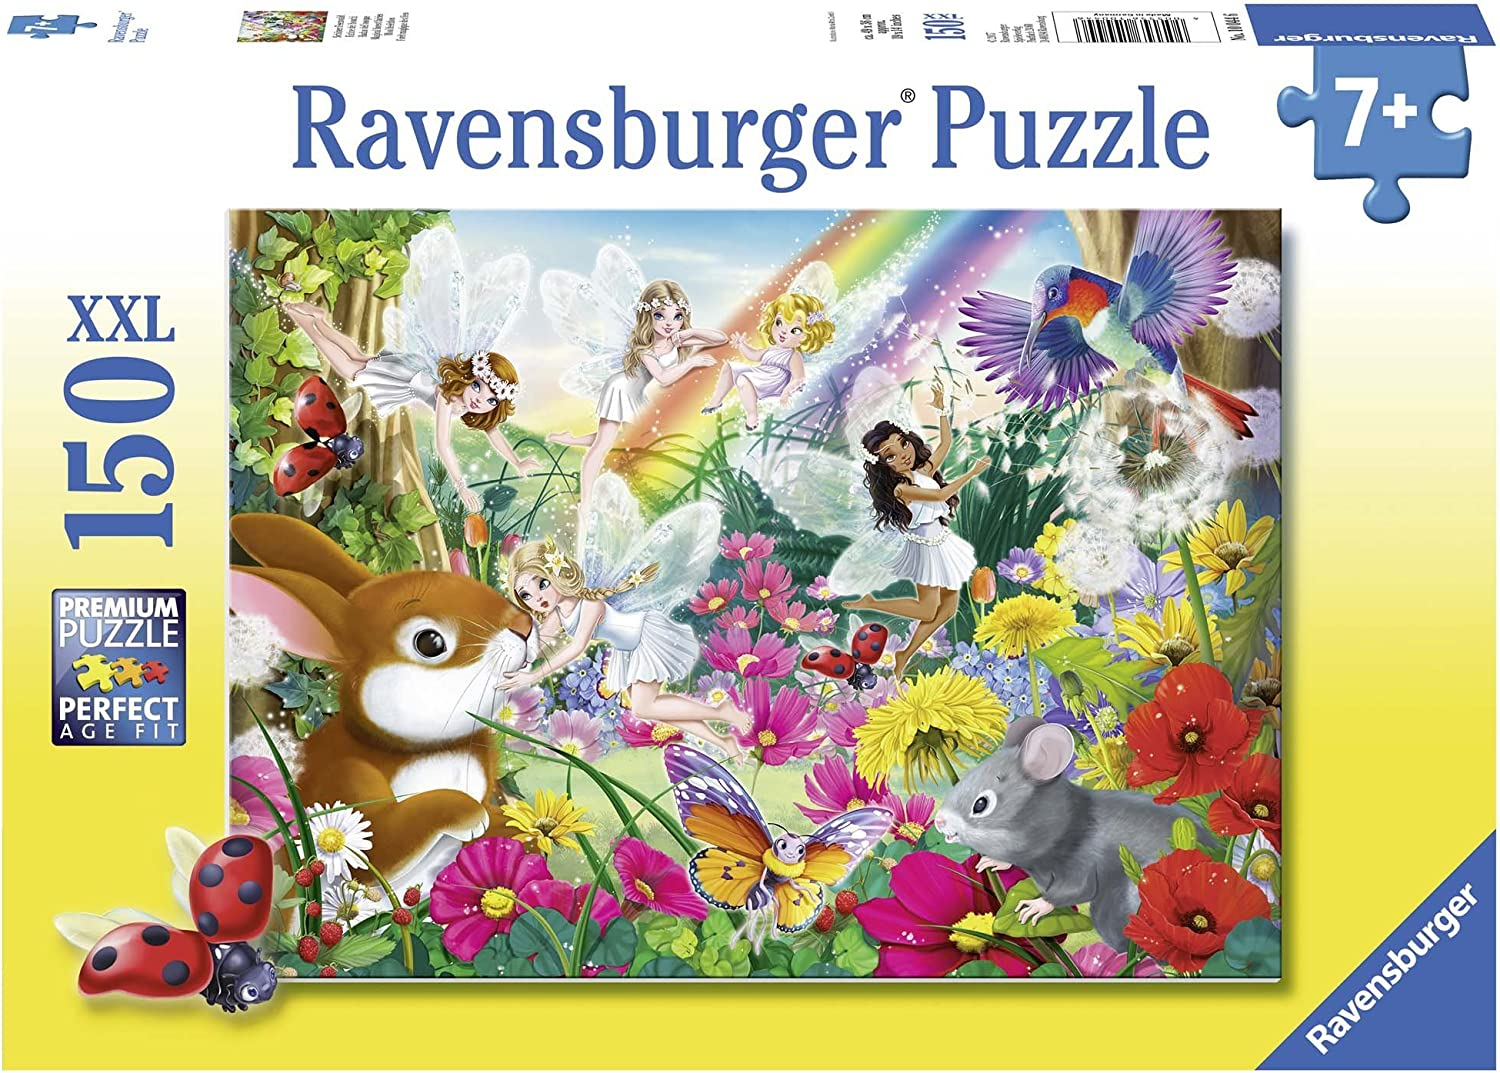 Challenge the lowest Boston Mall price of Japan ☆ Ravensburger 10044 Magical Forest Puzzles Fairies Jigsaw